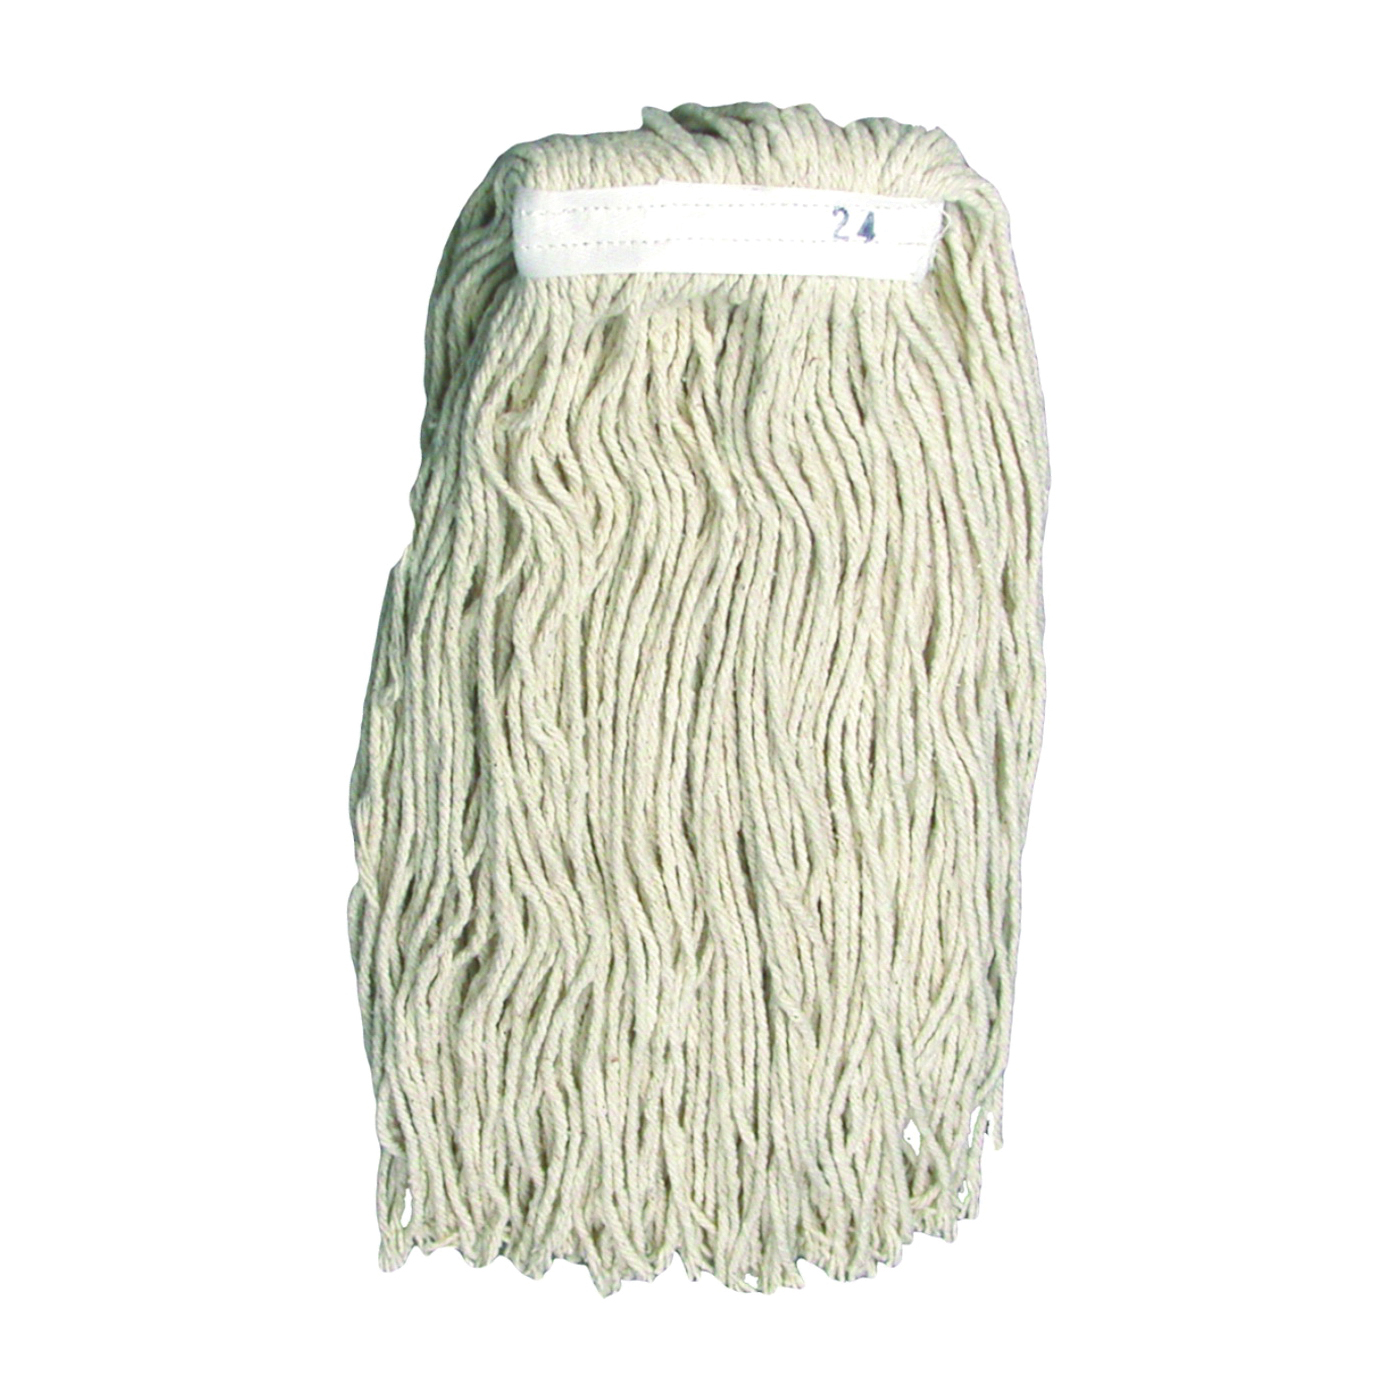 Picture of BIRDWELL 9051-12 Saddle Mop Head, 1-1/4 in Headband, Cotton